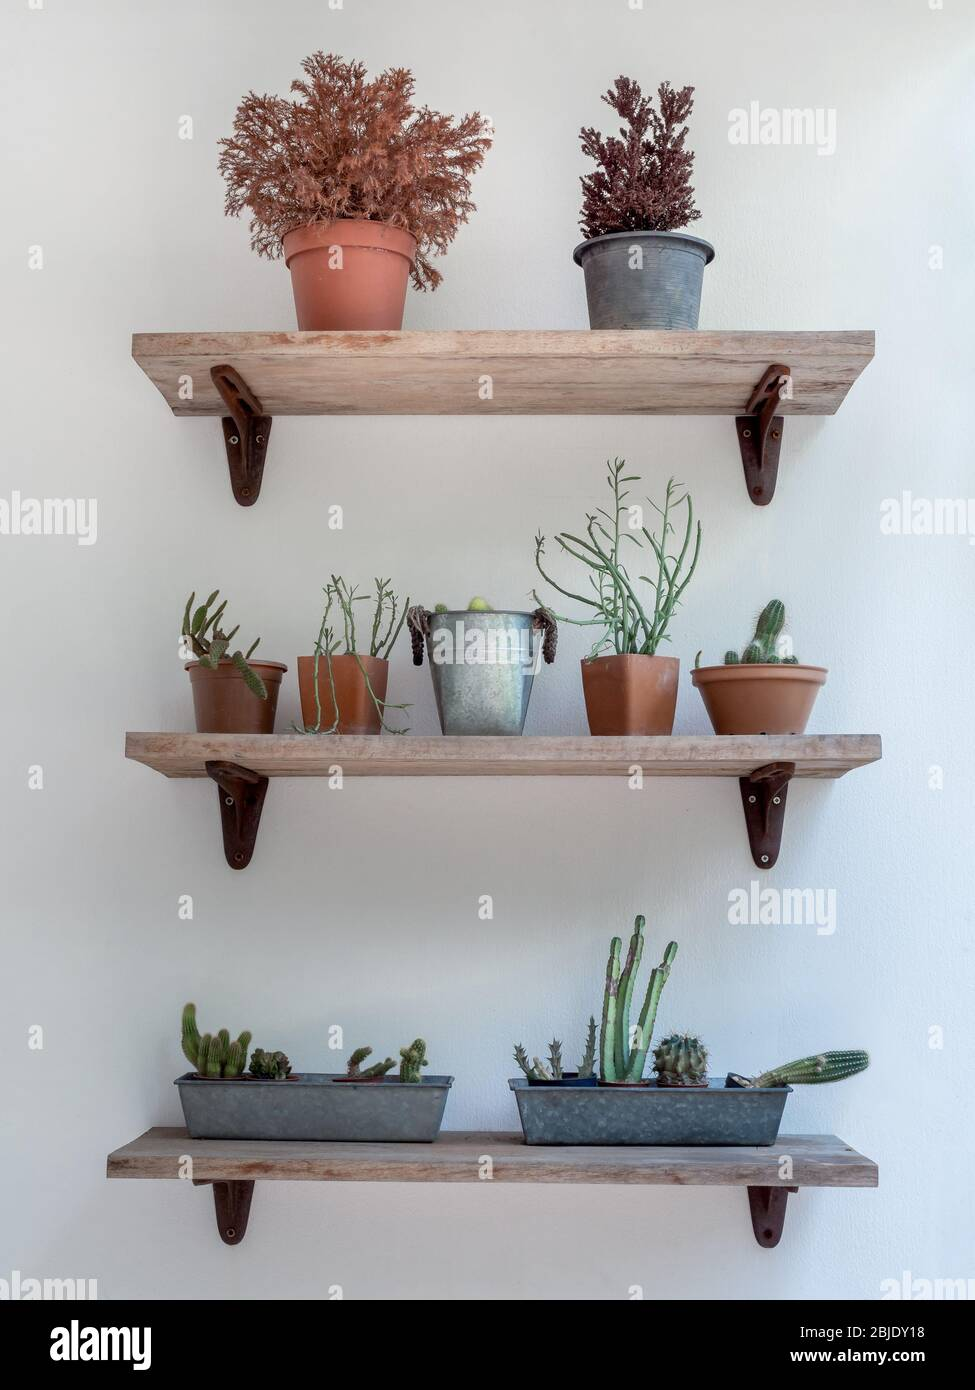 Green Cactus Succulent And Plants In Pots On Three Wooden Shelves On White Wall Background Vertical Style Stock Photo Alamy